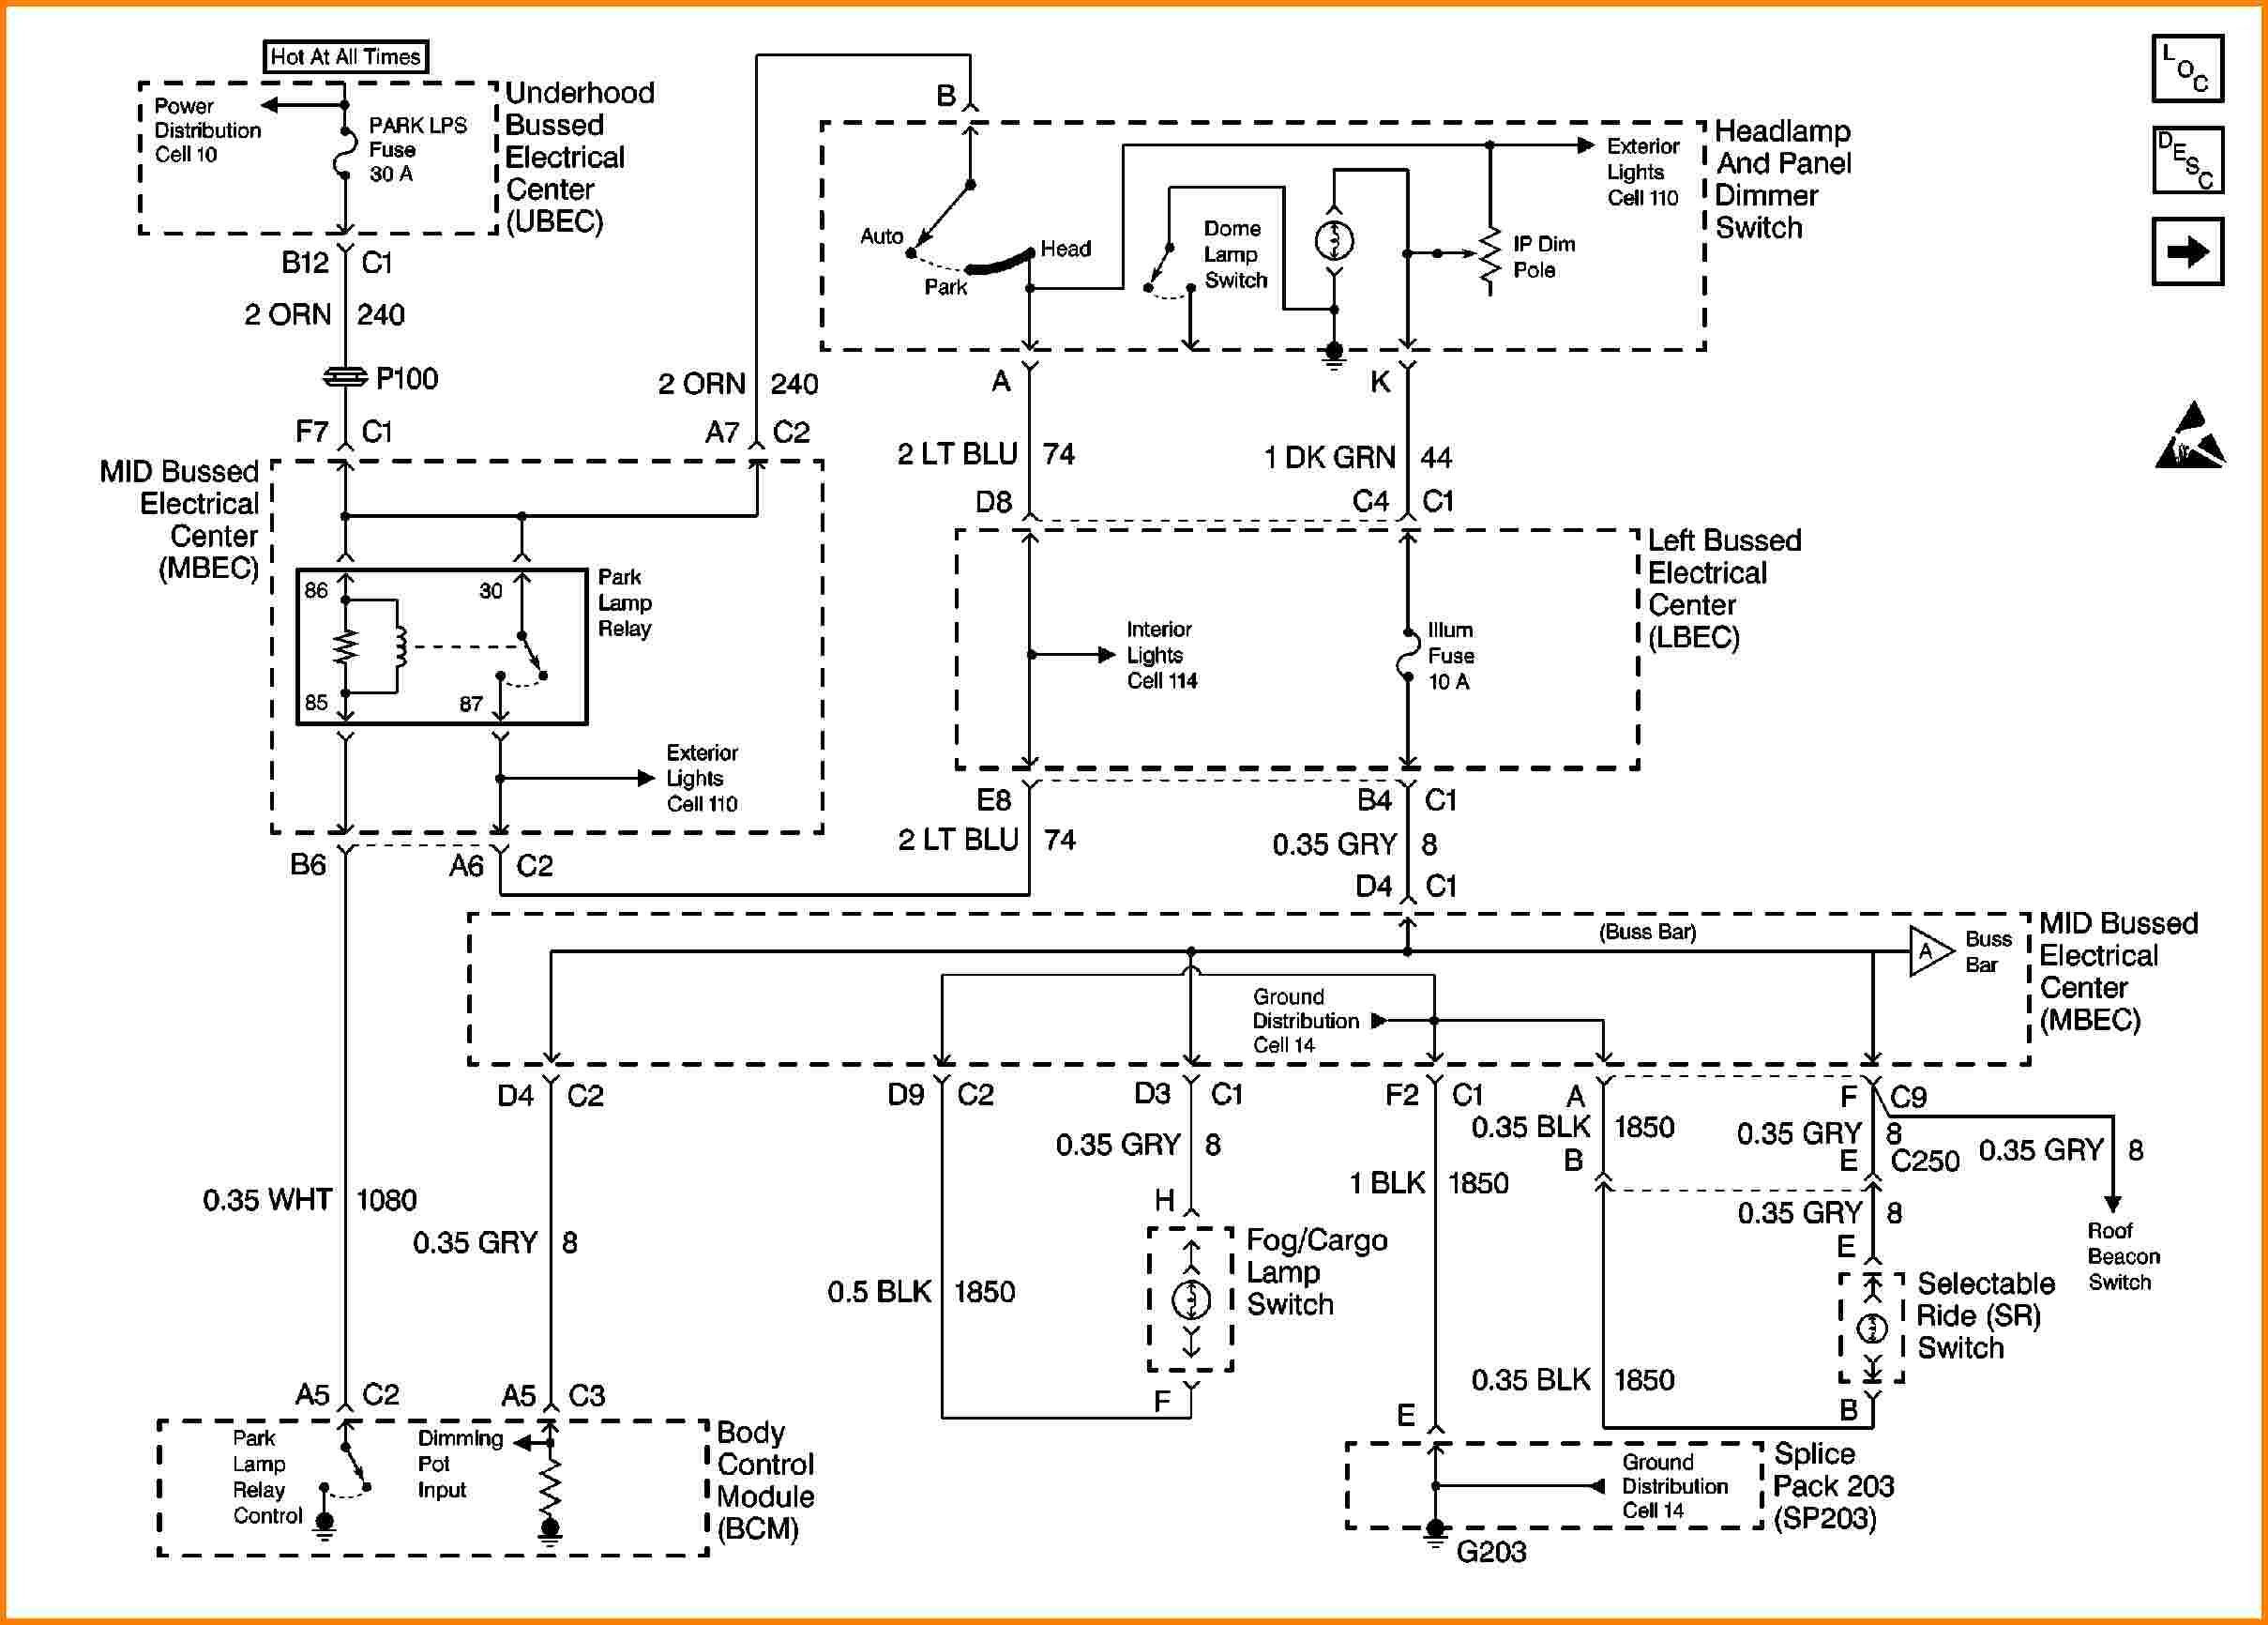 2009 chevy silverado trailer wiring diagram - wiring diagram ... 2003 chevy trailer wiring diagram chevy truck trailer wiring color code wiring diagram schematics